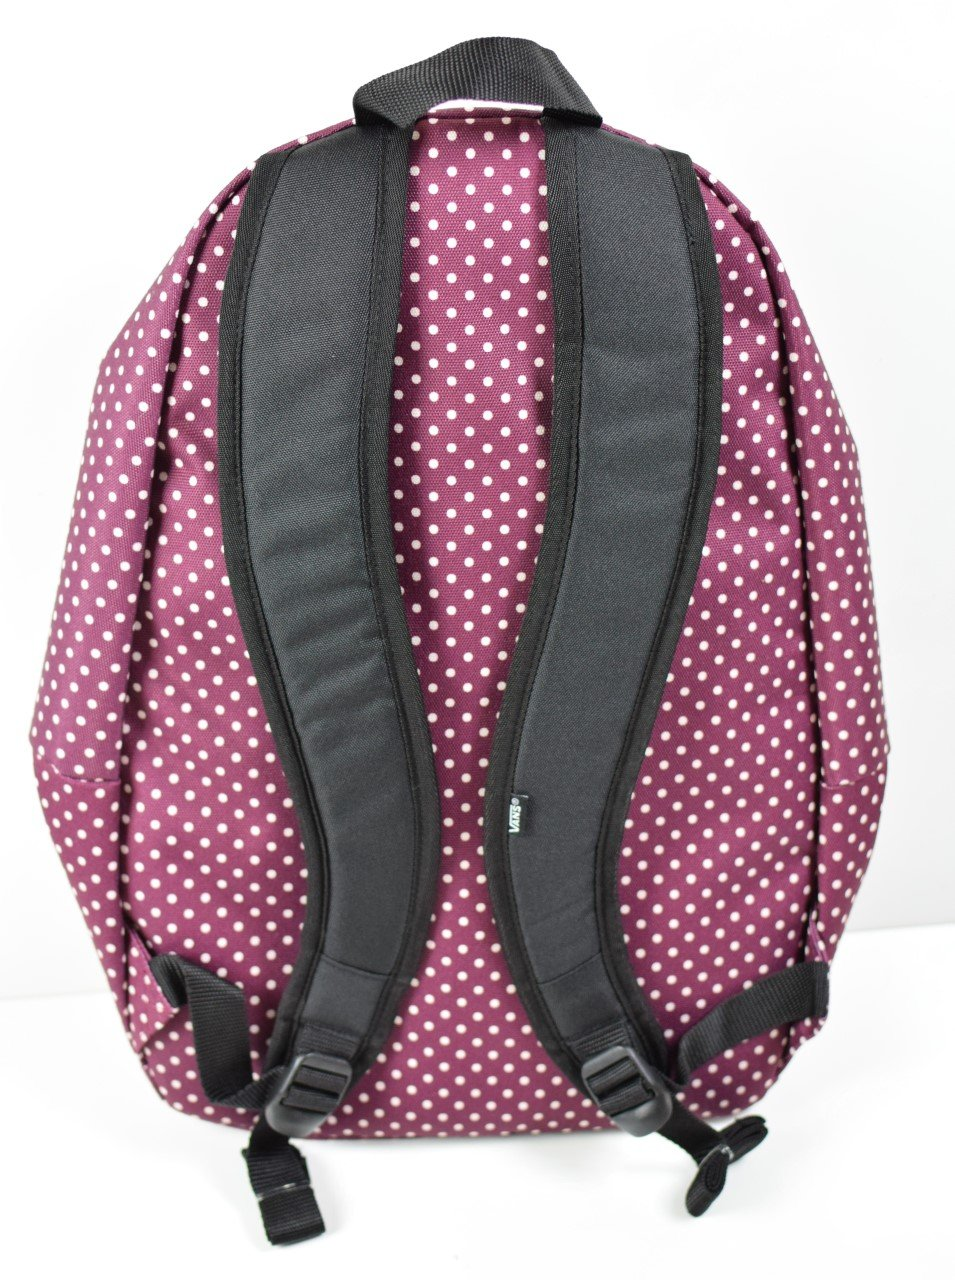 Vans Realm Sporty Orange Checkered 22l Backpack  627116c65ce07